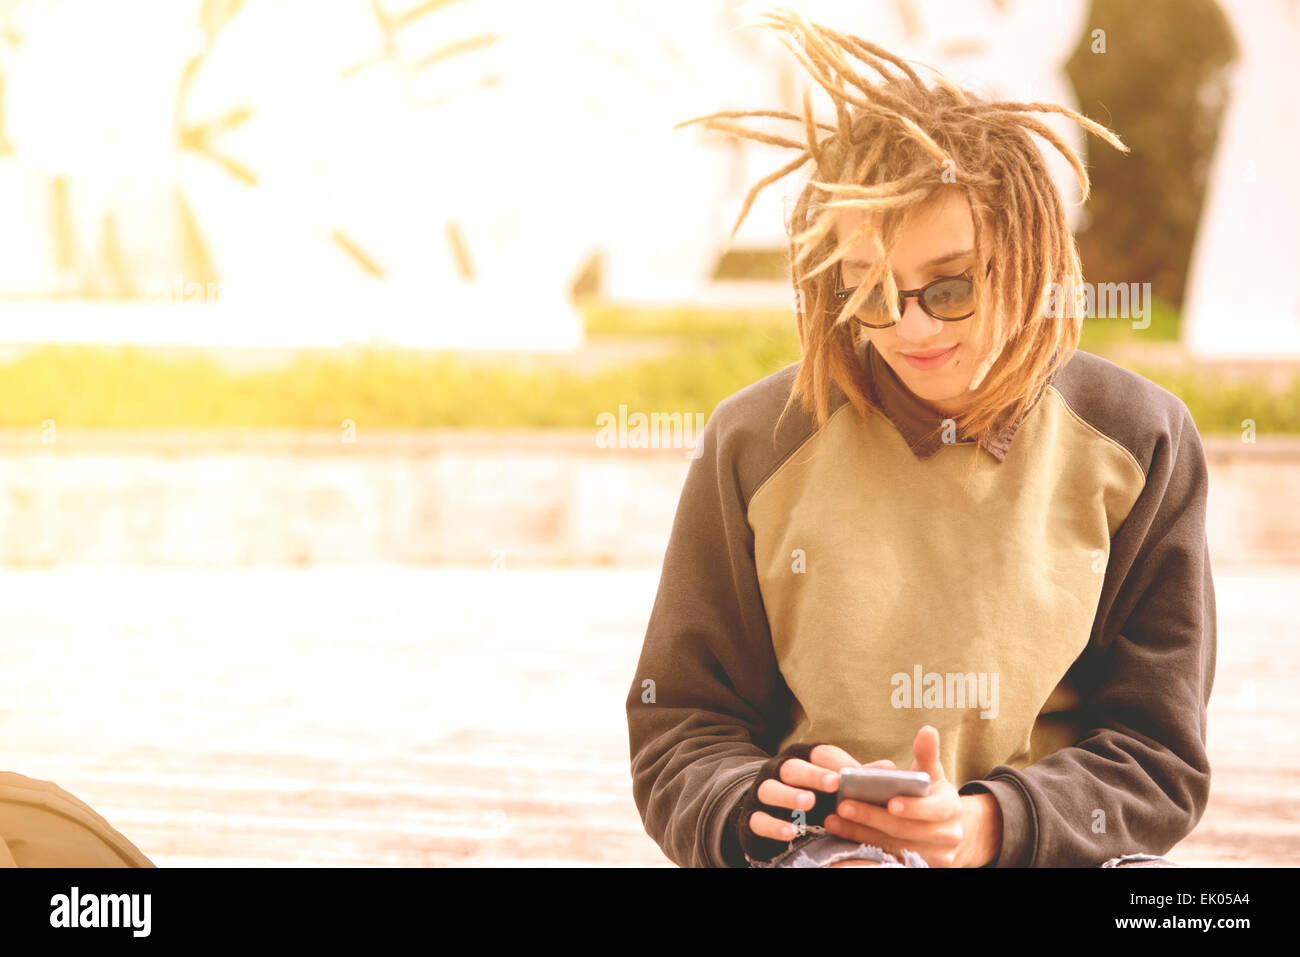 Lifestyle portrait of a young man using a smart phone outdoors warm tones filter applied - Stock Image